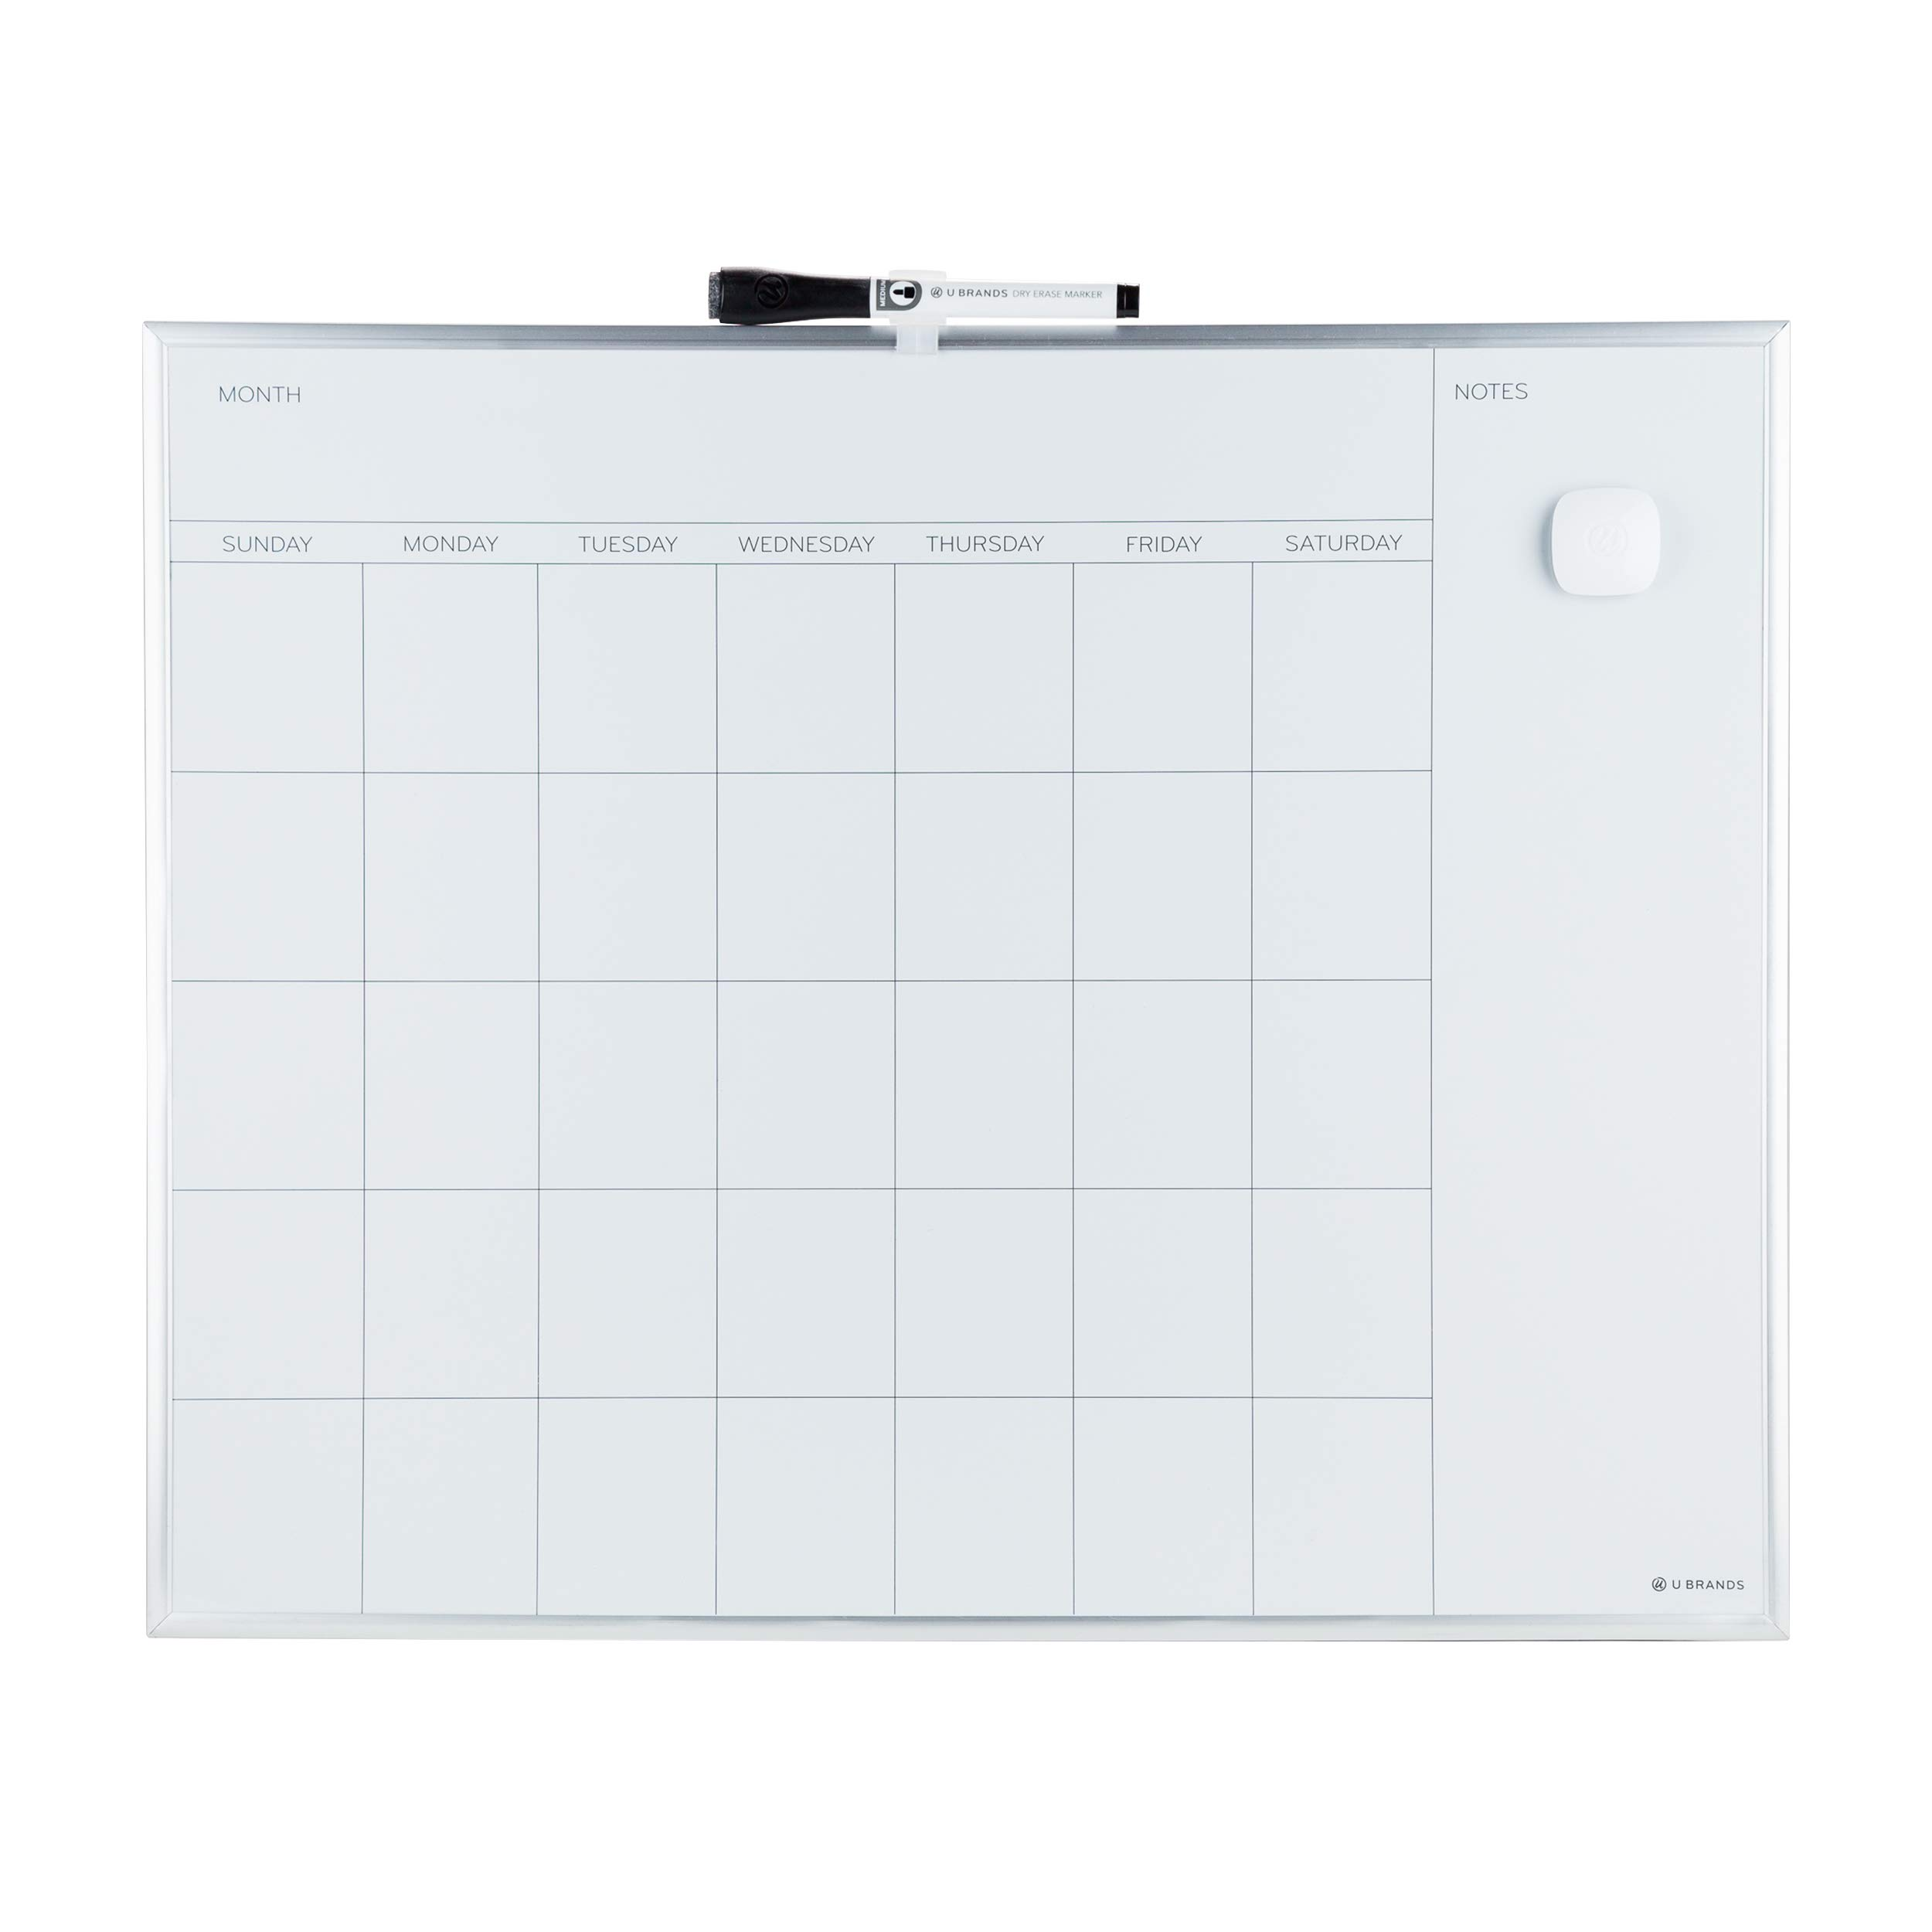 U Brands Magnetic Monthly Calendar Dry Erase Board, 20 x 16 Inches, Silver Aluminum Frame by U Brands (Image #1)